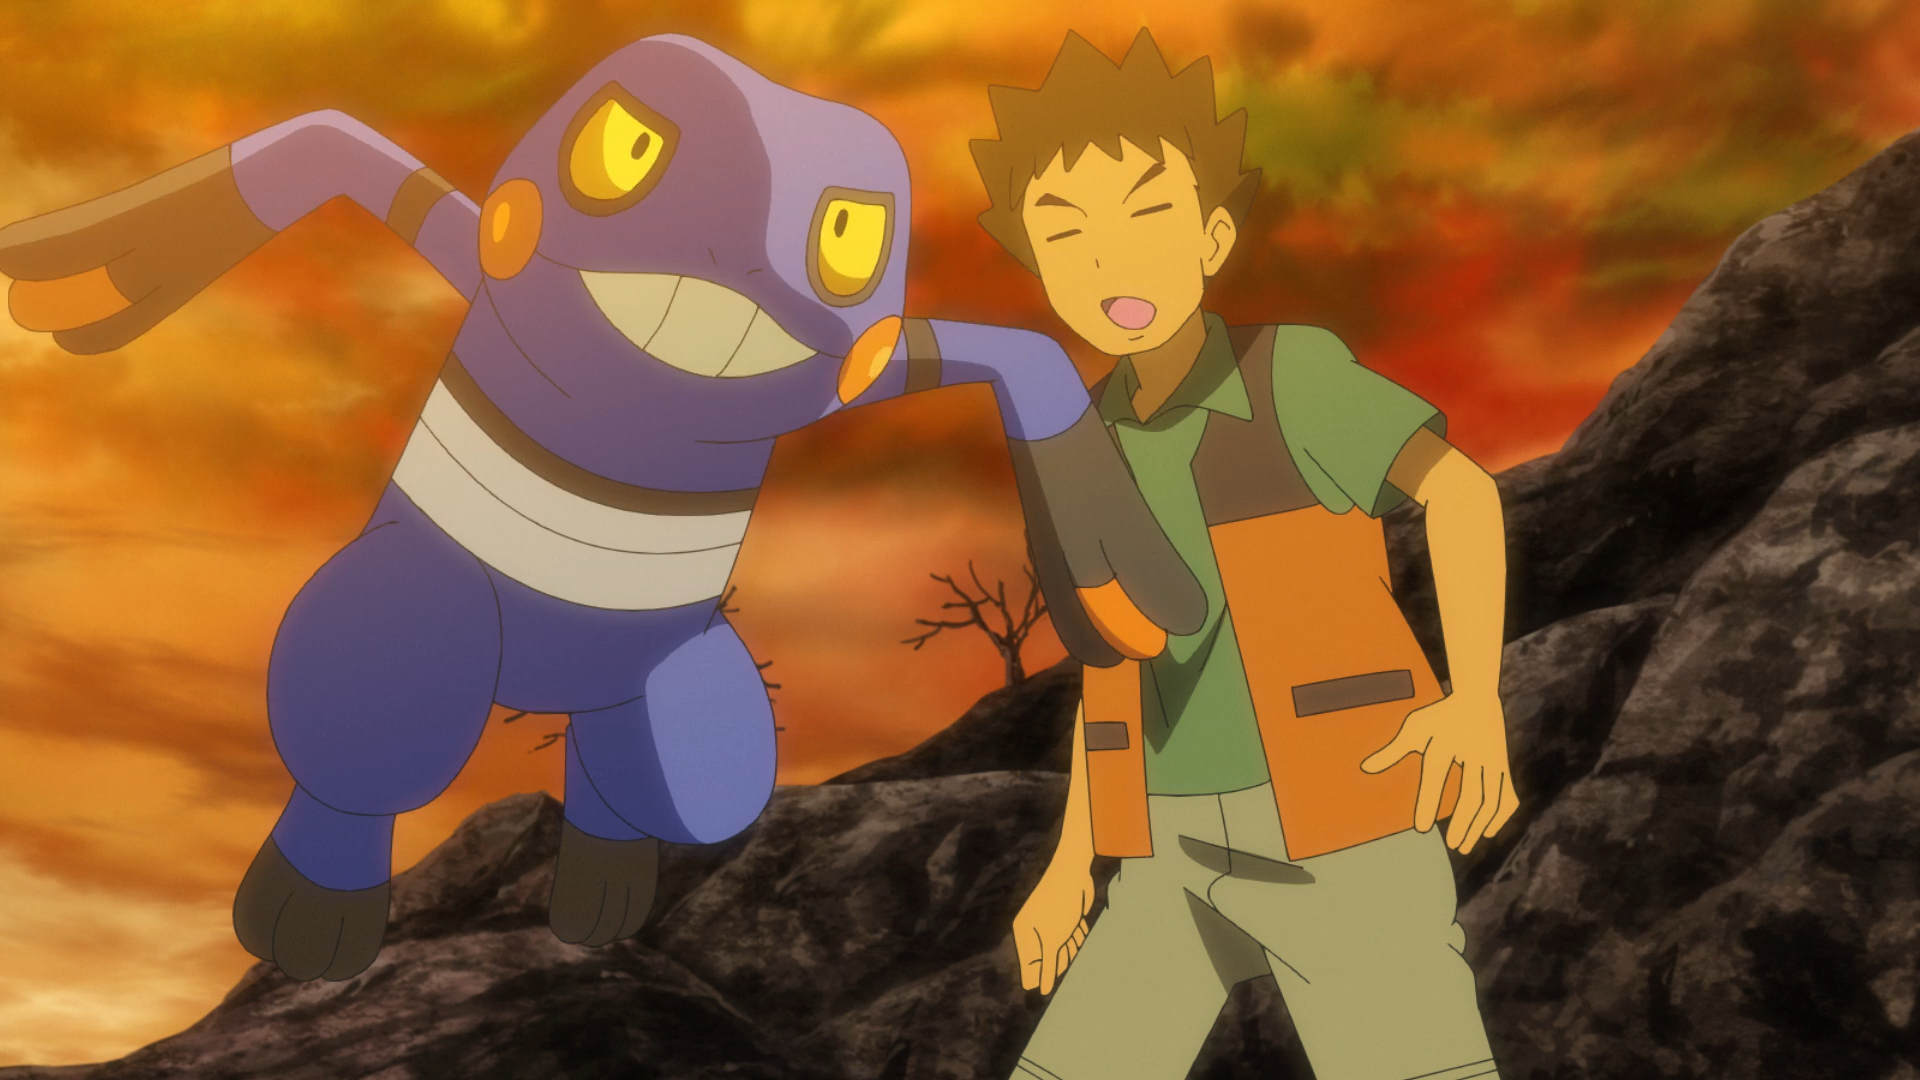 Brocks croagunk